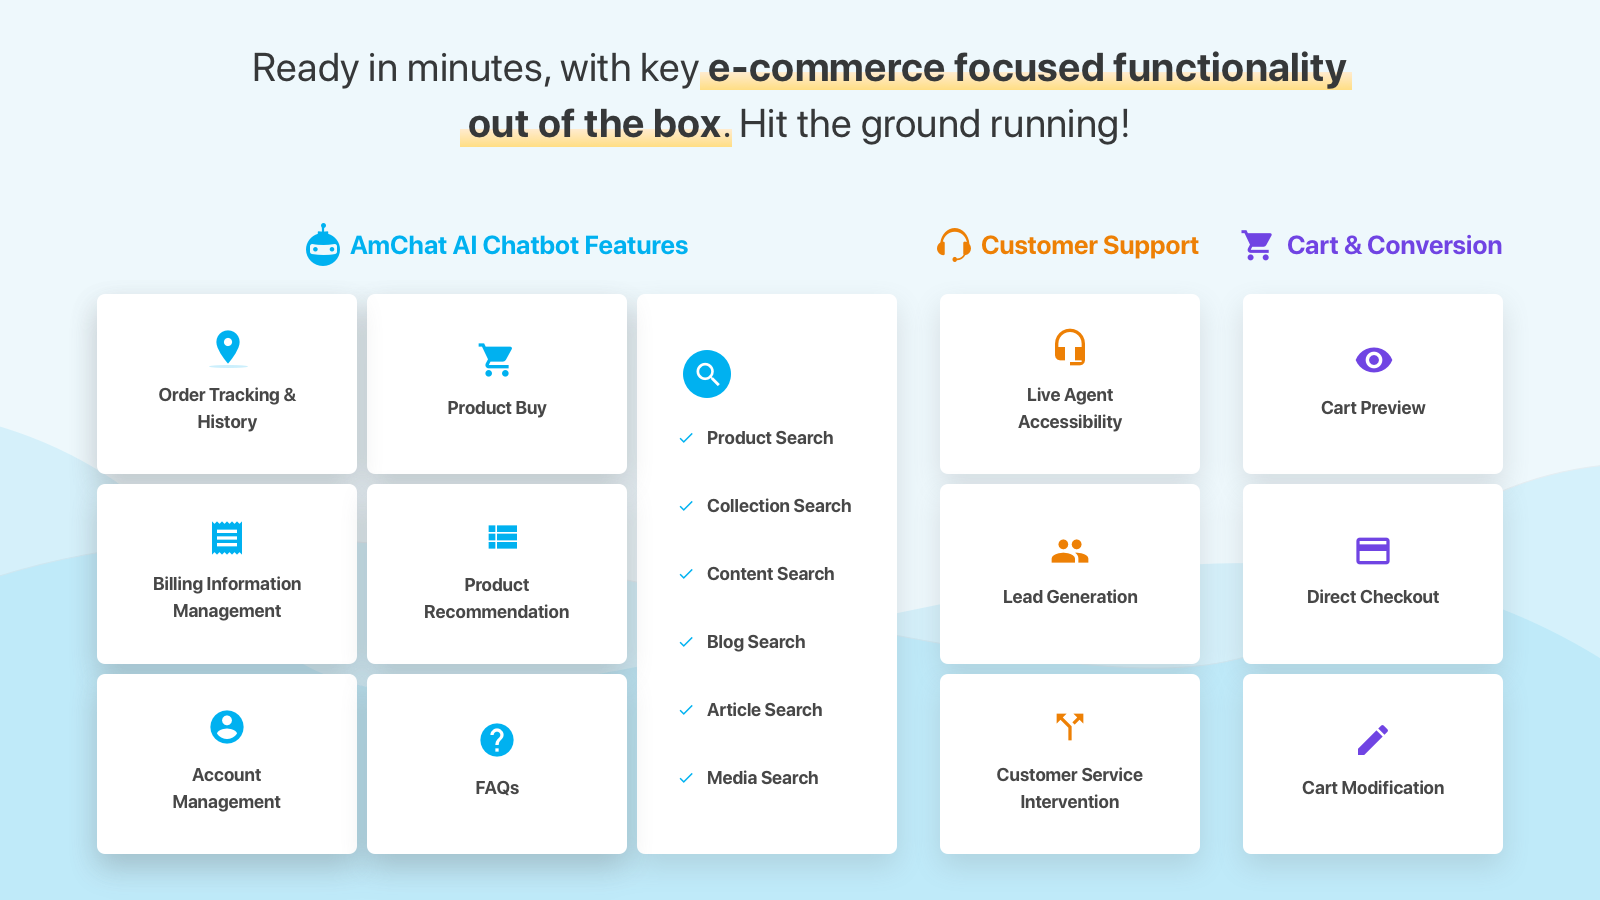 Ready in minutes with key ecommerce focused functionalities